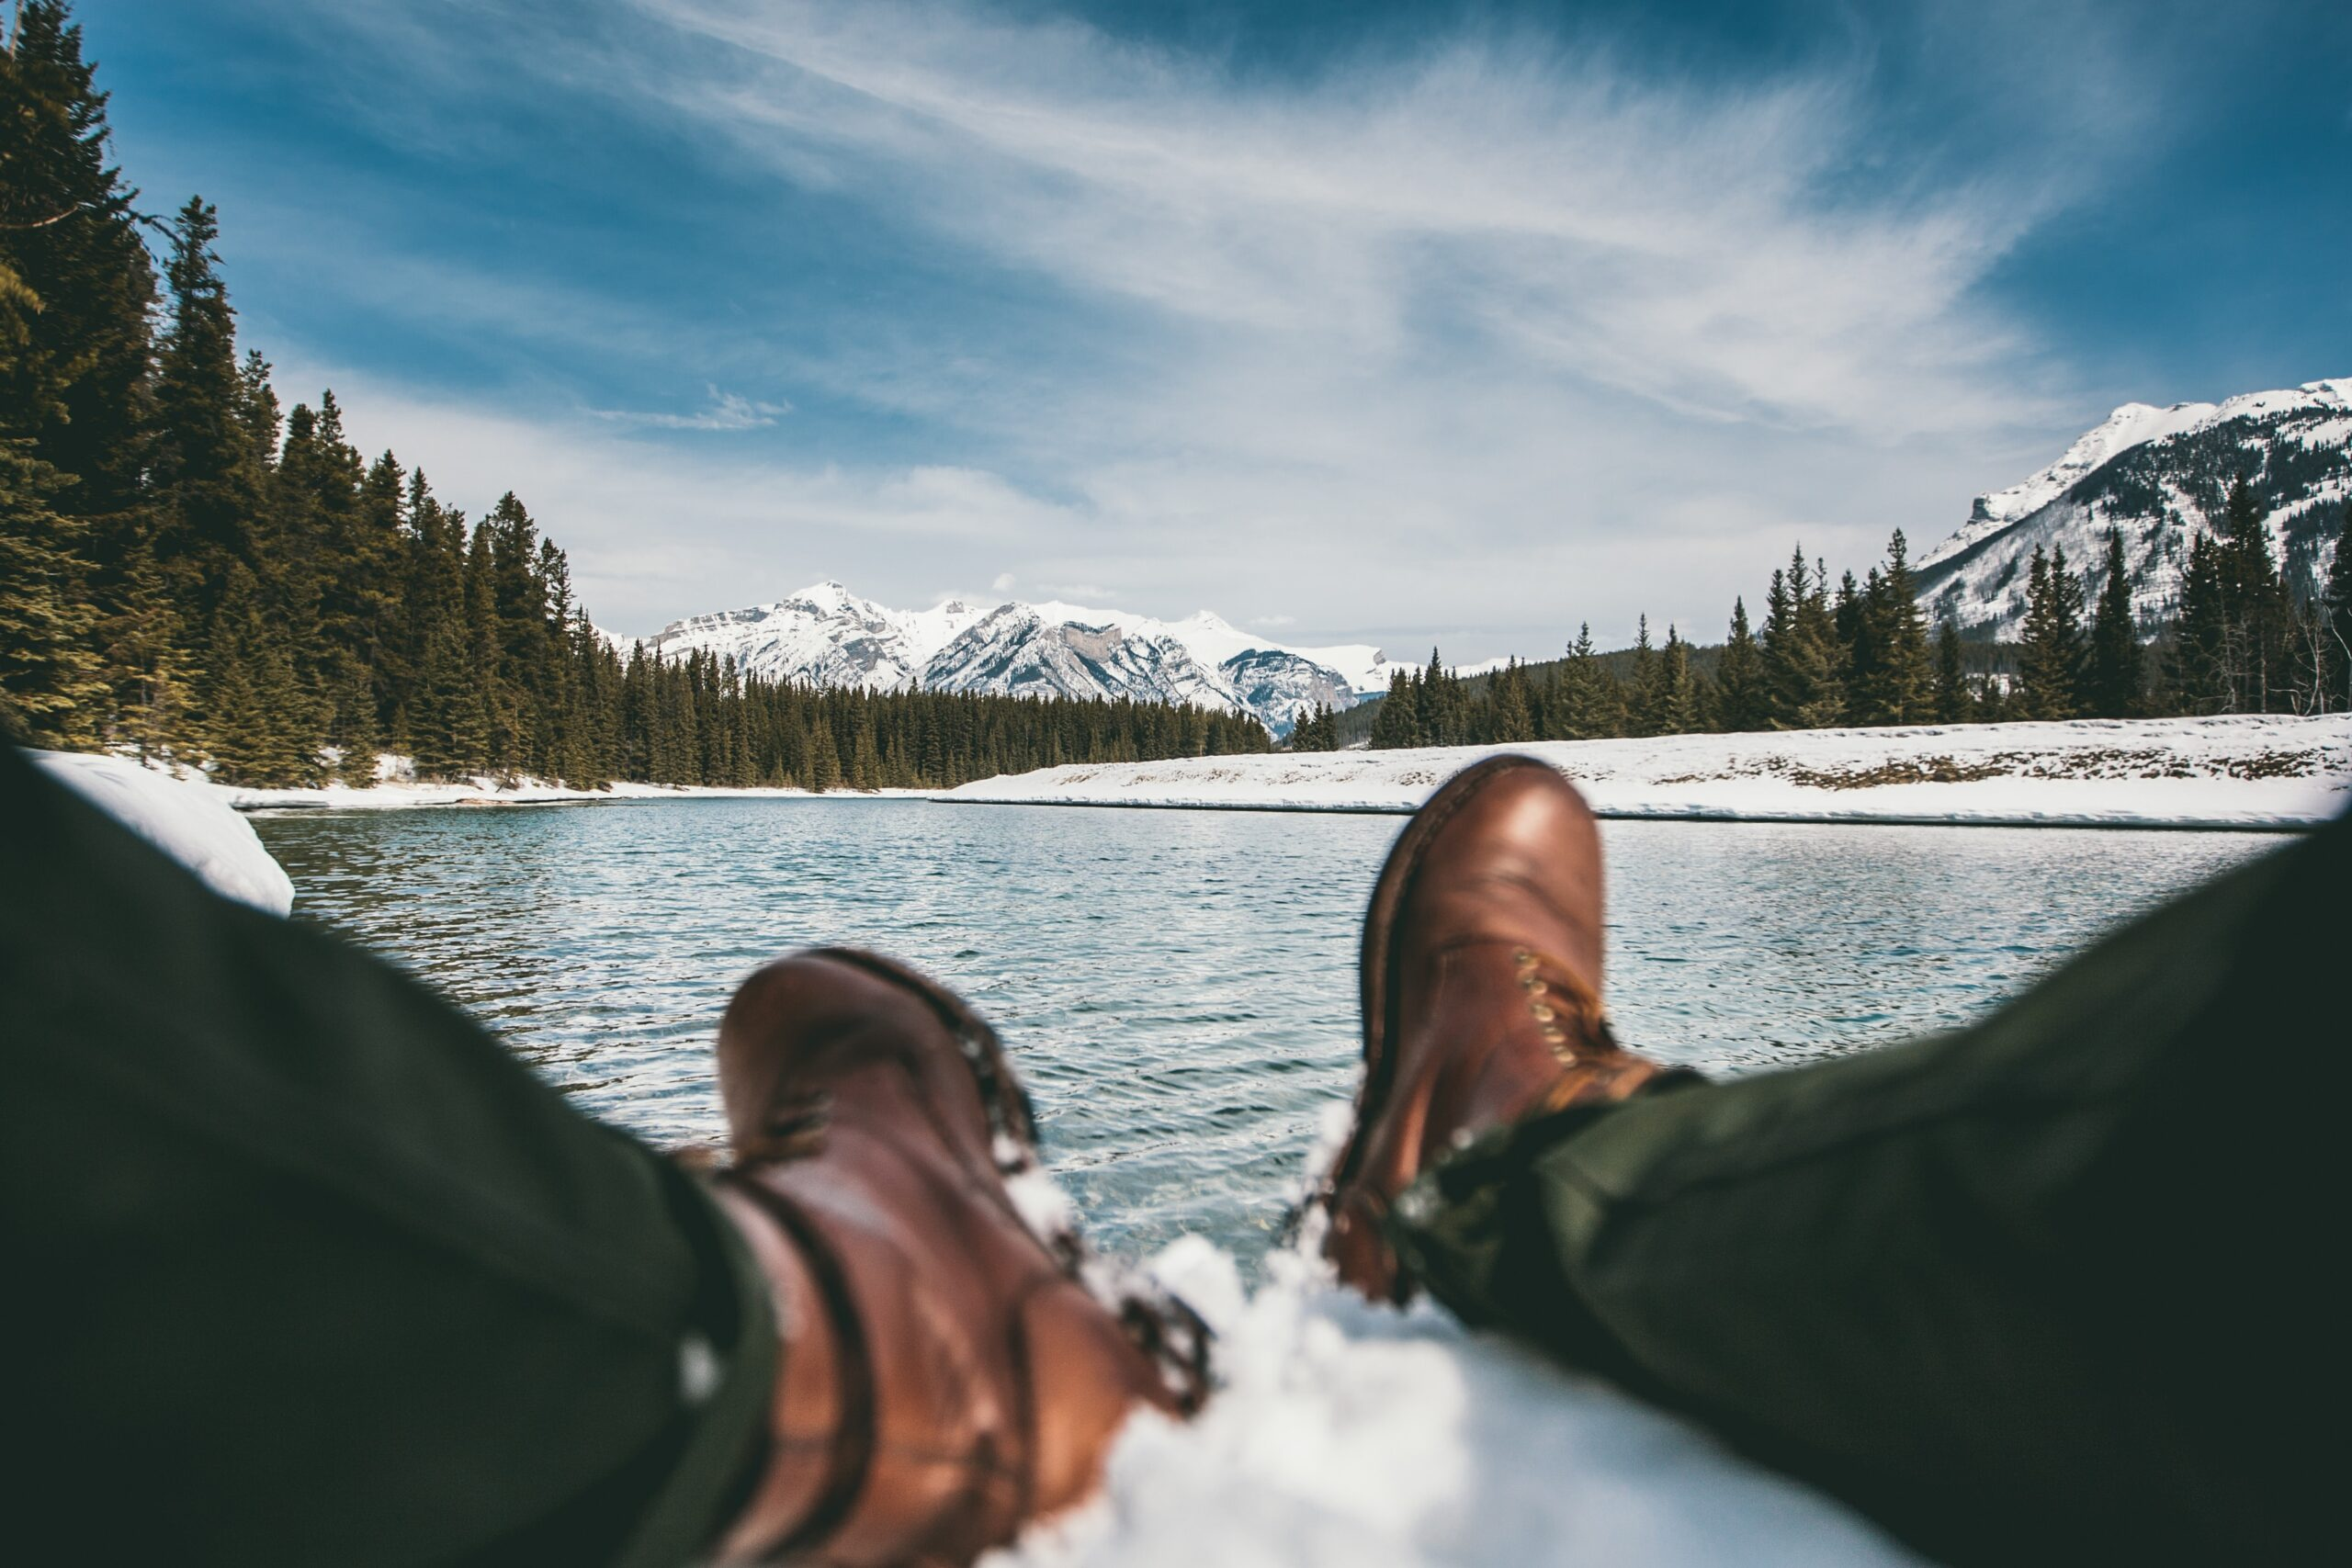 person sitting on snow near body of water